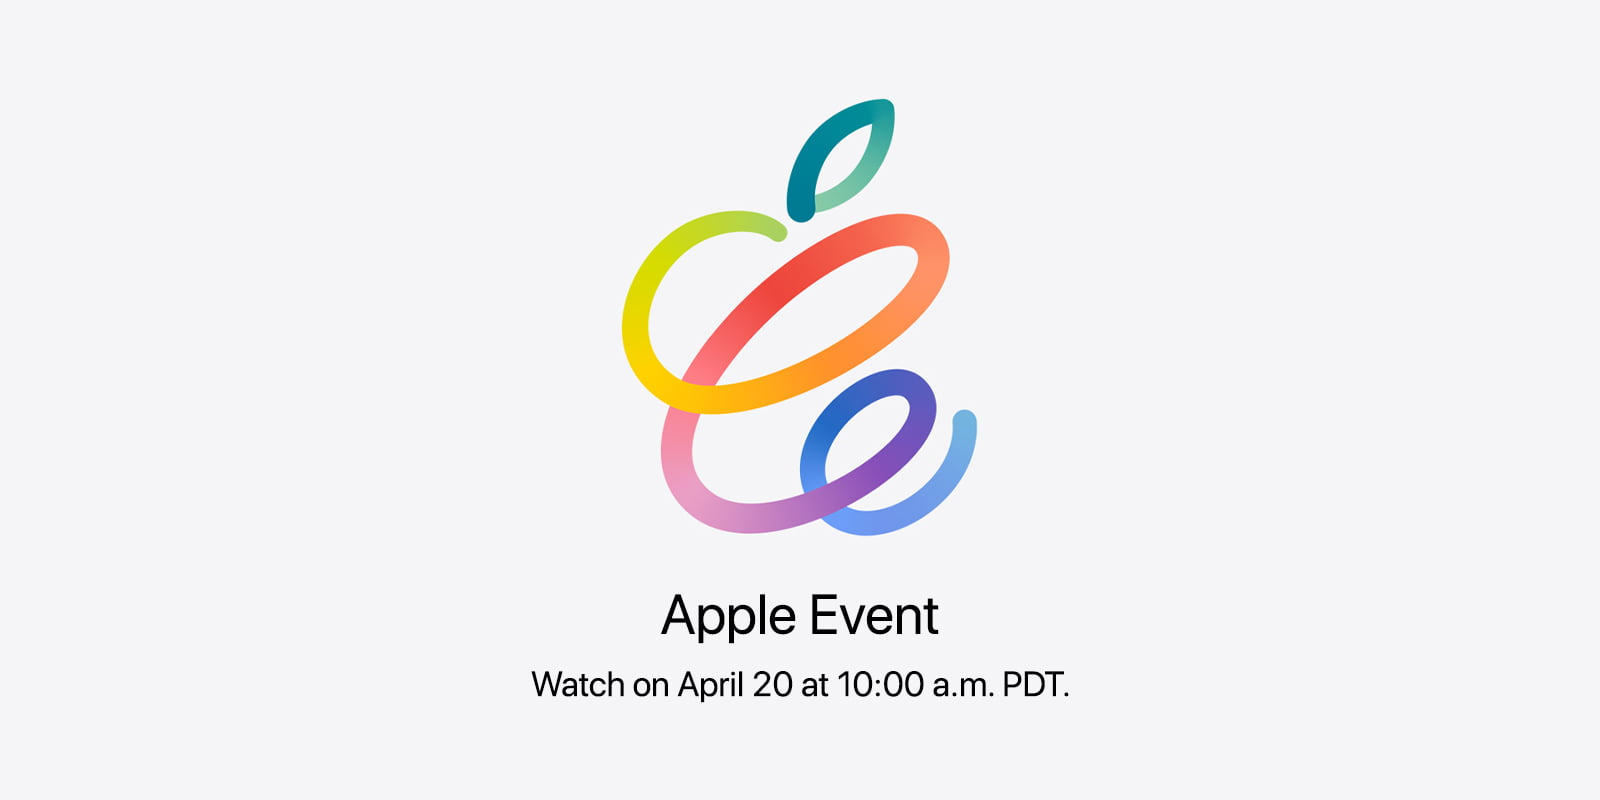 Apple confirms its next event on April 20